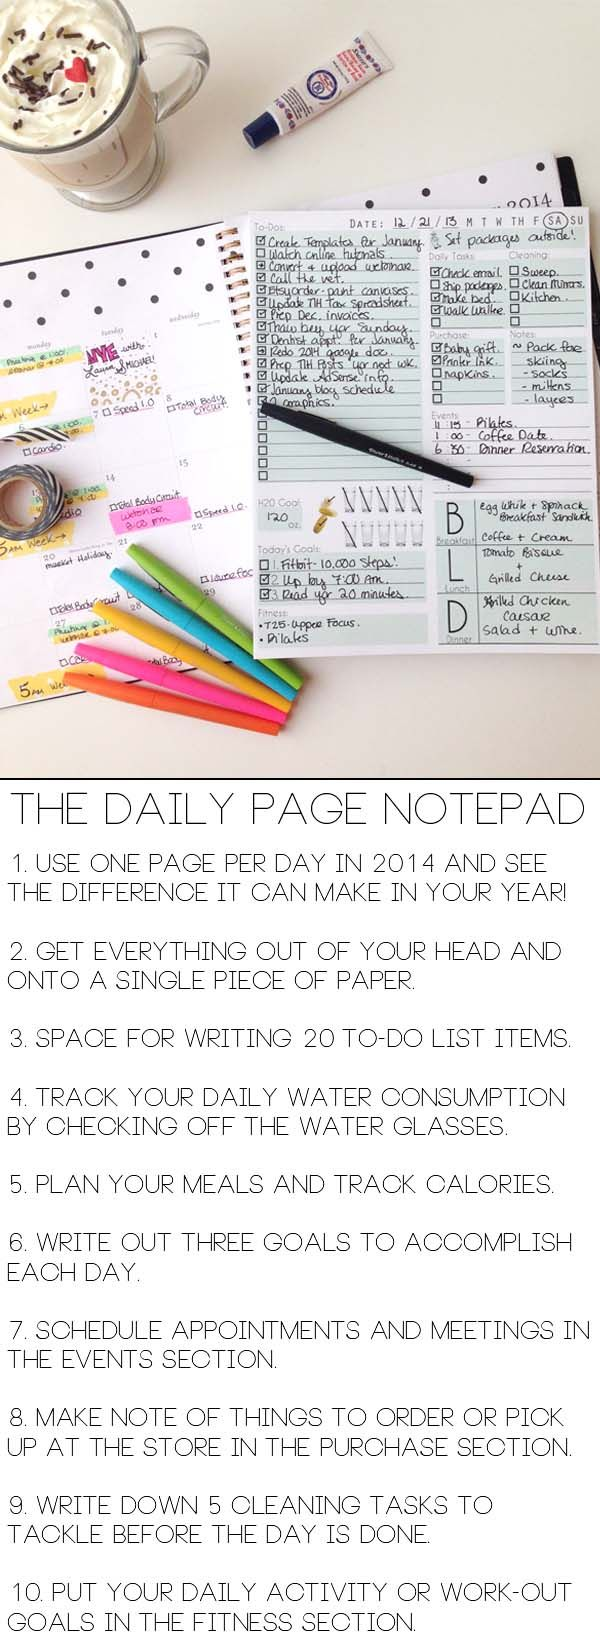 Organize your entire day on one sheet of paper with The Daily Page Notepad.